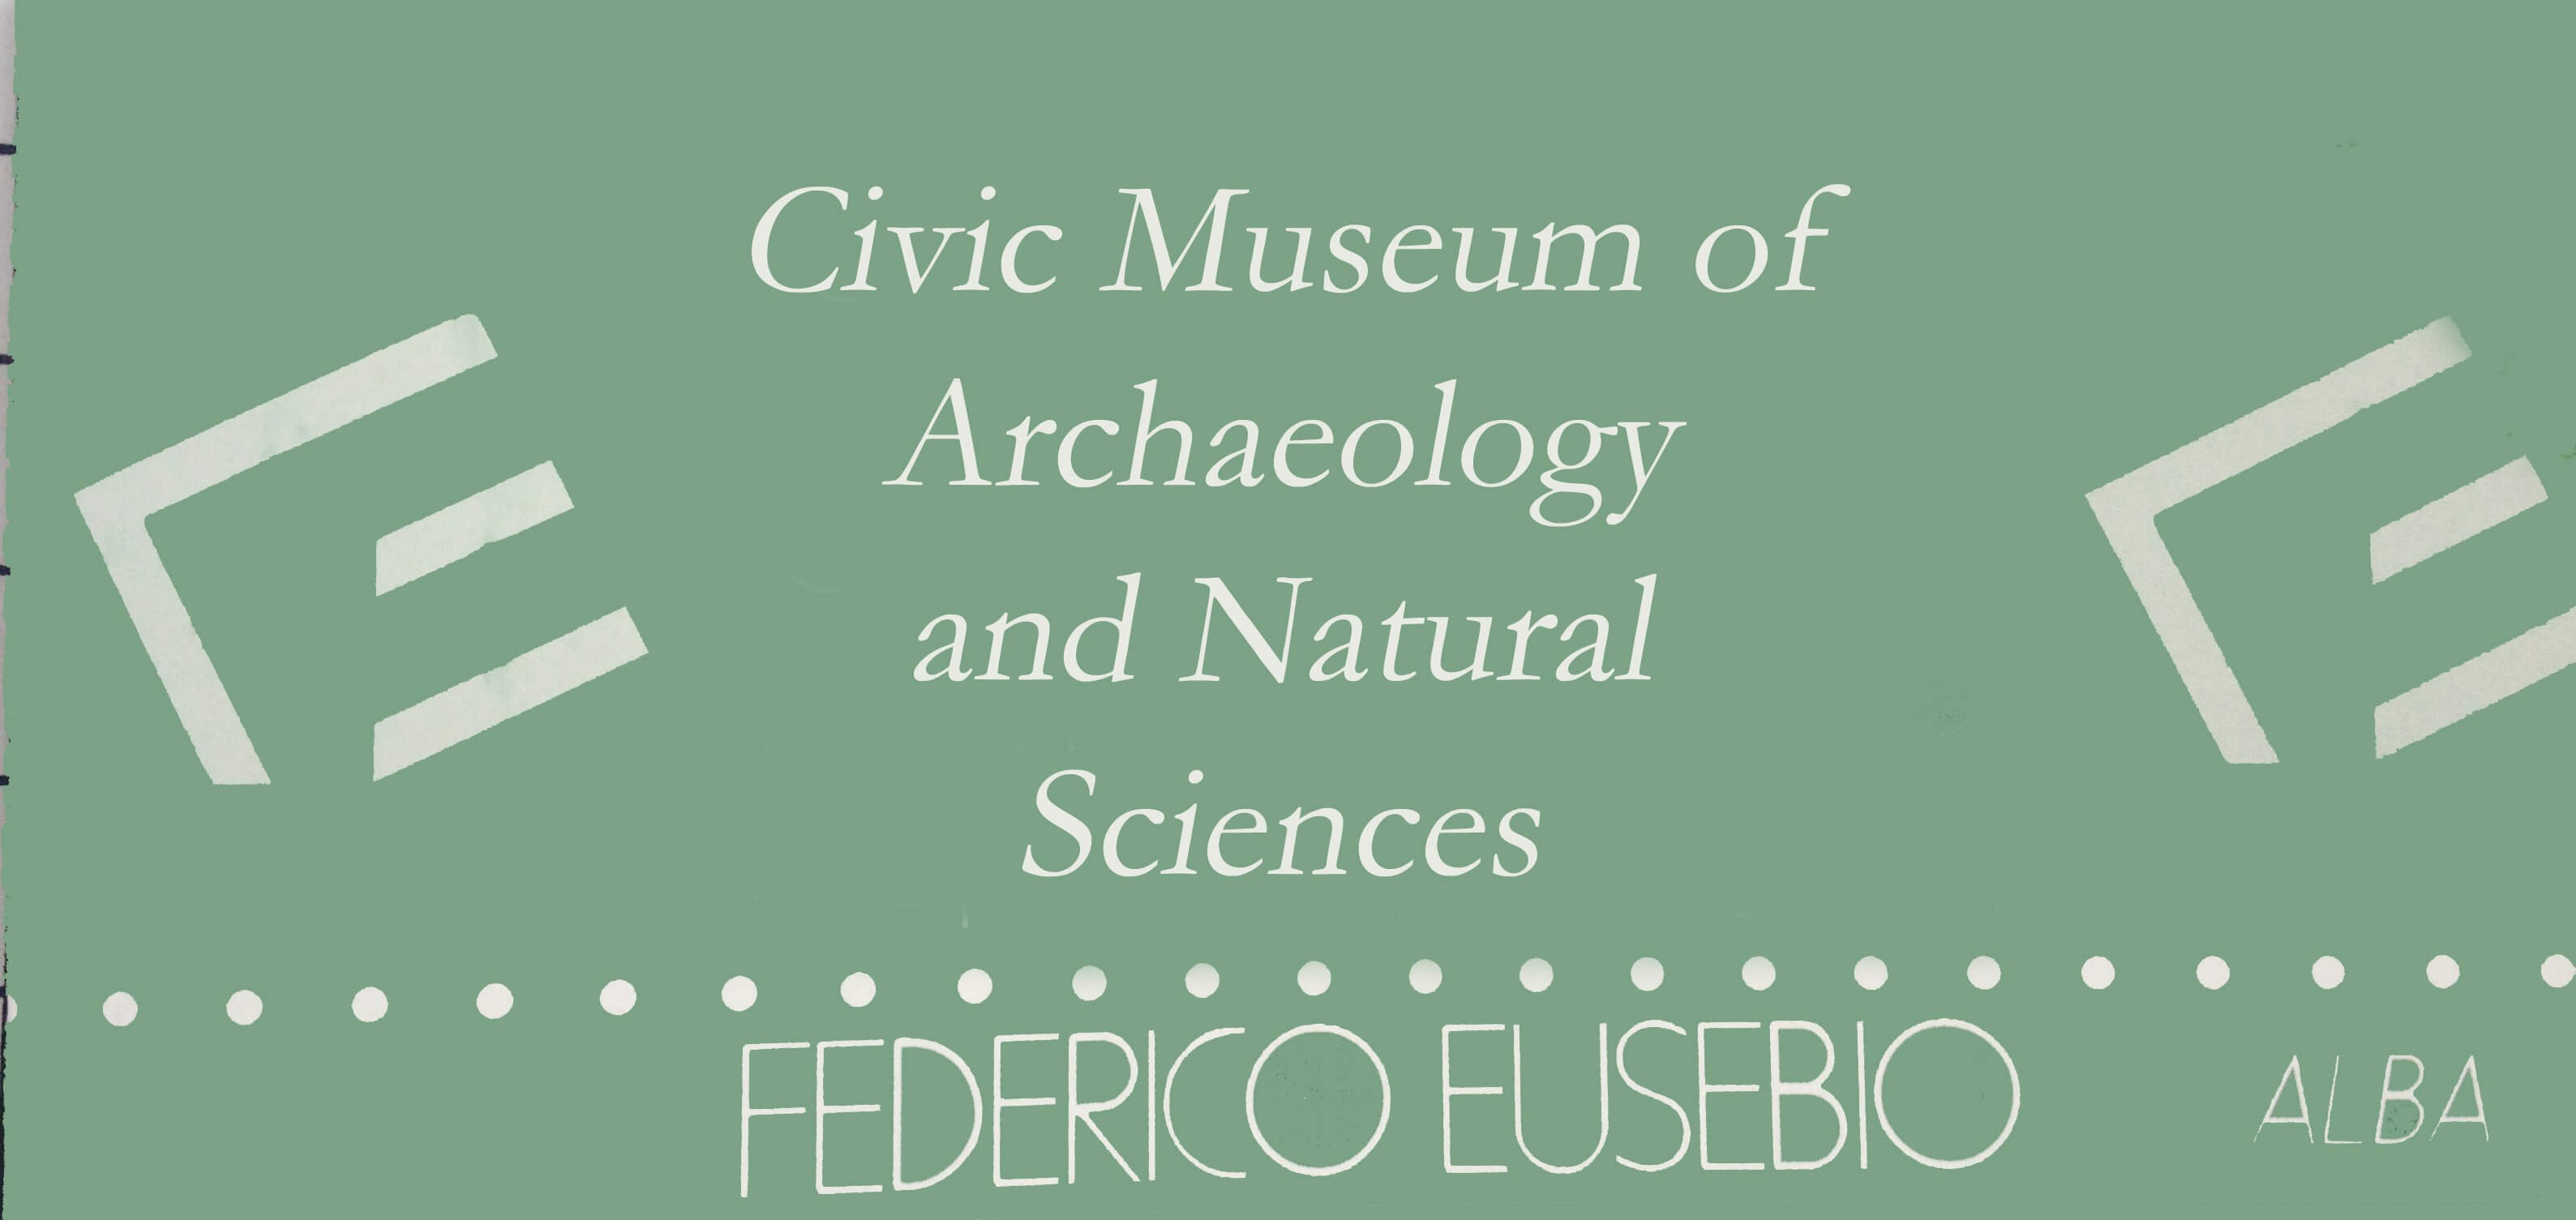 Federico Eusebio Civic Archaeological Museum in Alba